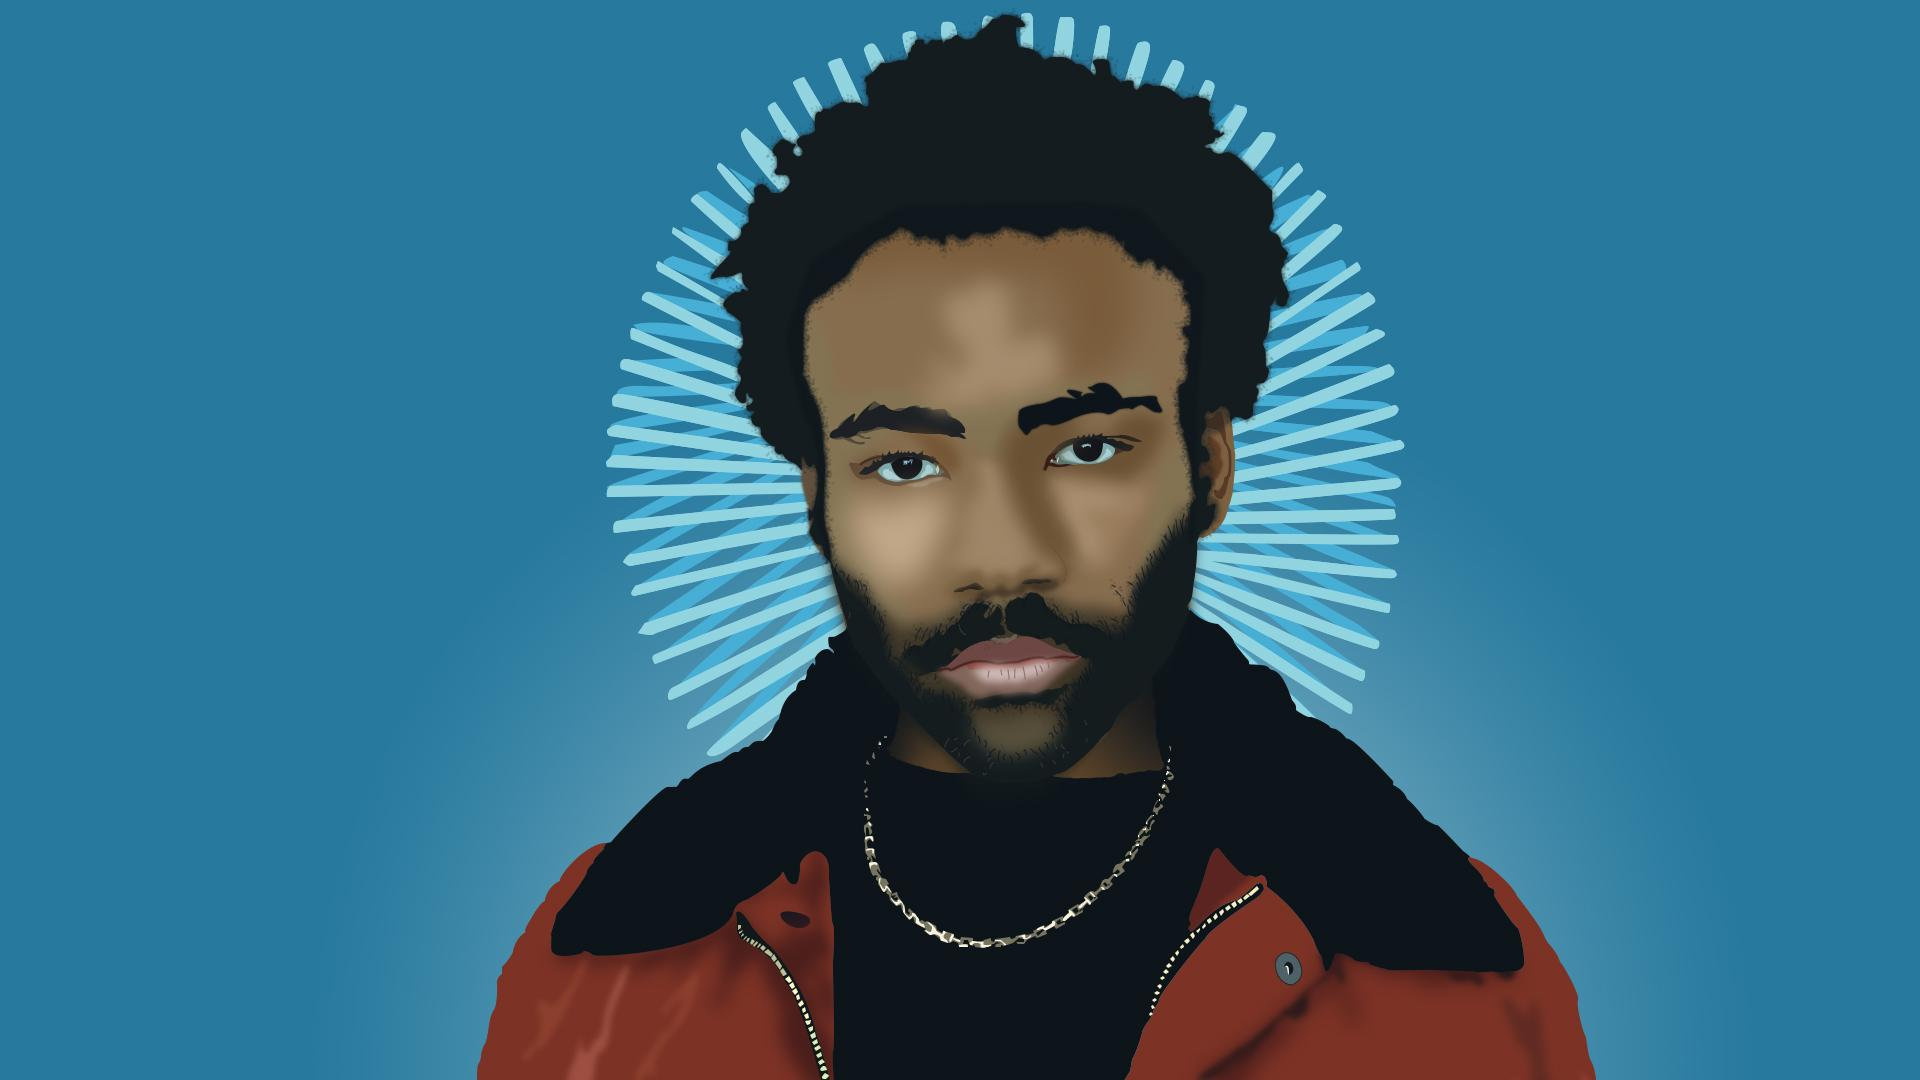 1920x1080 - Donald Glover Wallpapers 3